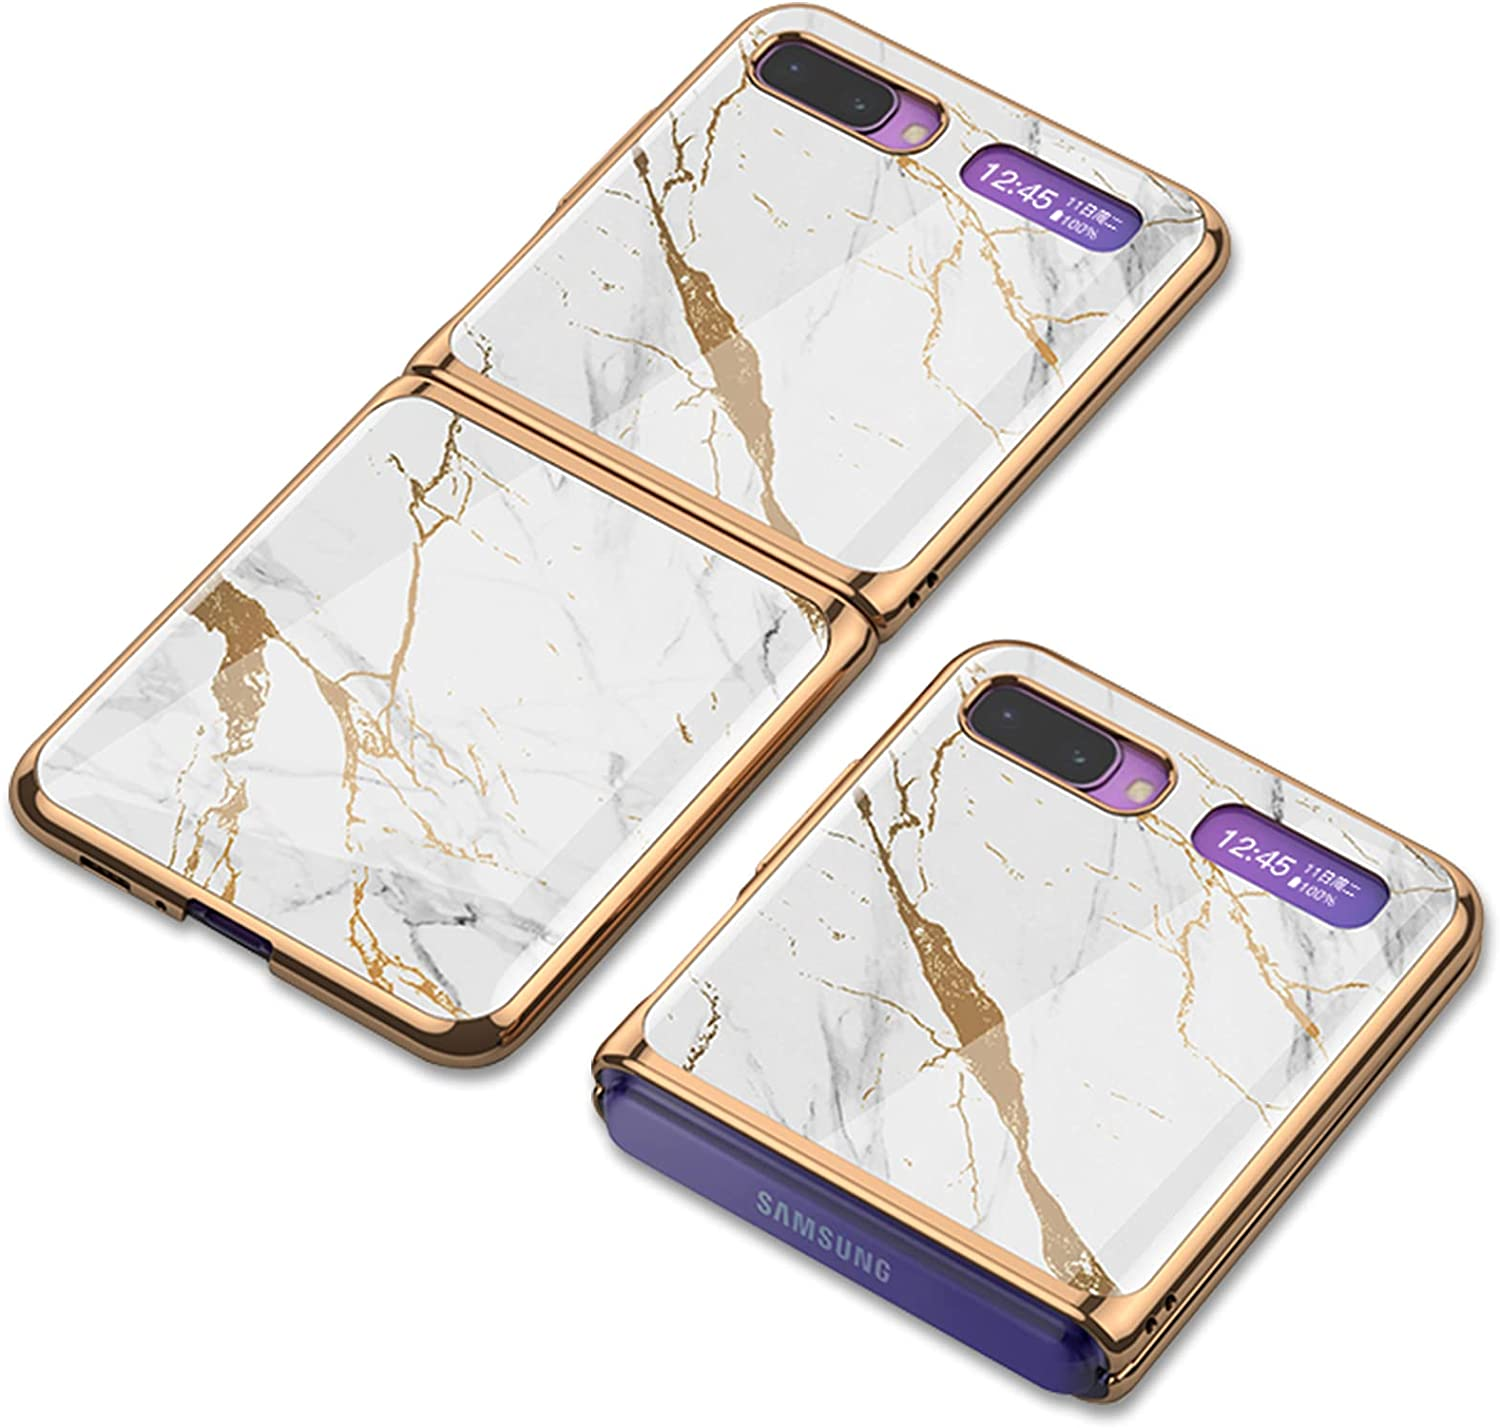 Jusy Samsung Galaxy Z Flip Case with Heart Pattern Design for Women, Slim Fit, Luxury and Elegant Ultra-Thin Protective Case for Galaxy Z Flip 5G (Marble Pattern)